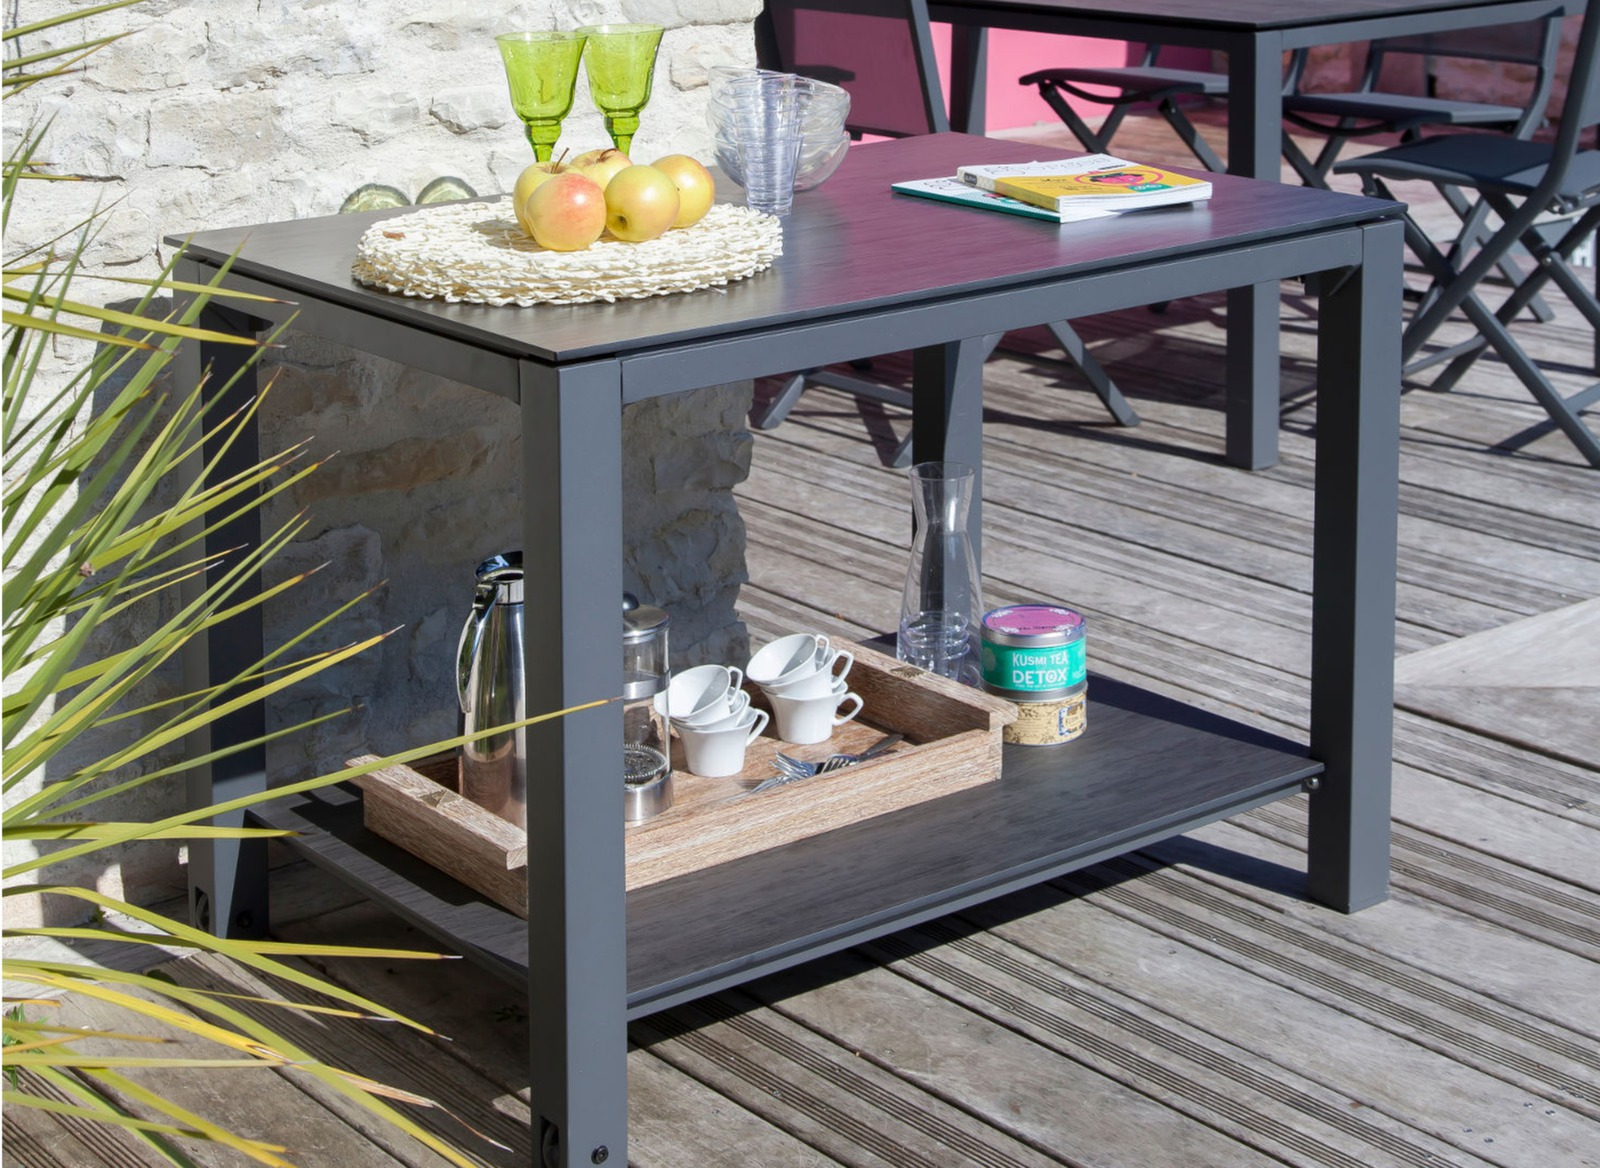 table plancha 100 plateau trespa tables de jardin meubles de jardin en ligne proloisirs. Black Bedroom Furniture Sets. Home Design Ideas